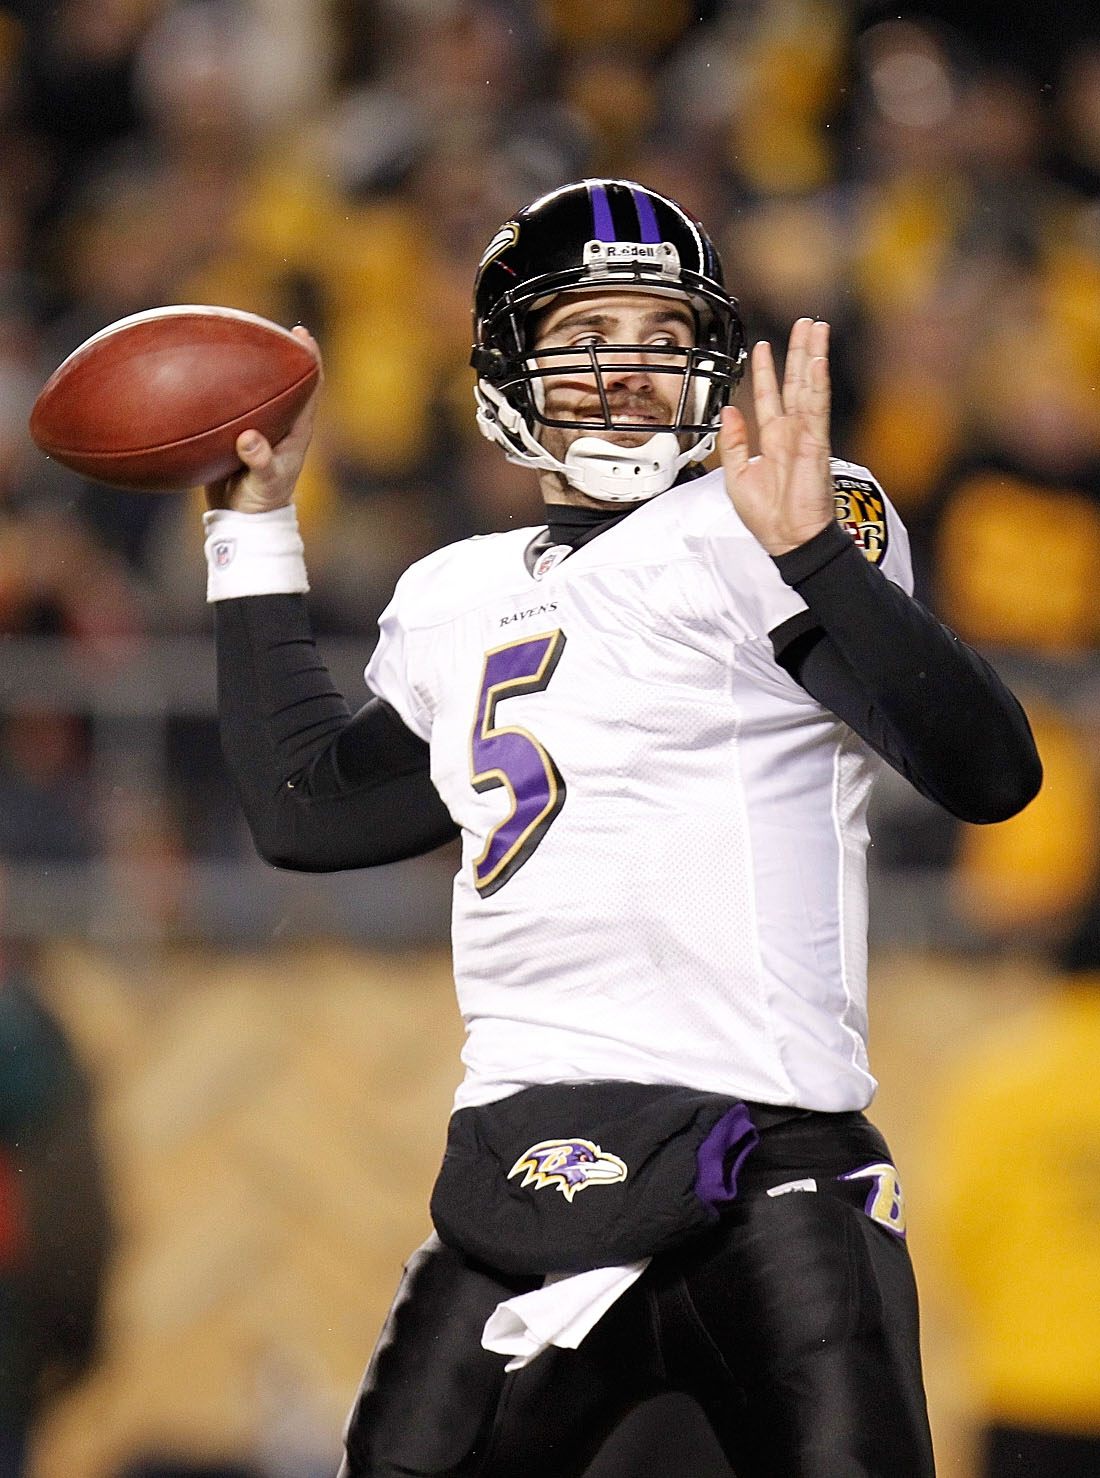 Flacco's not currently a great quarterback, but he's better than the guy who won the franchise's only Super Bowl.